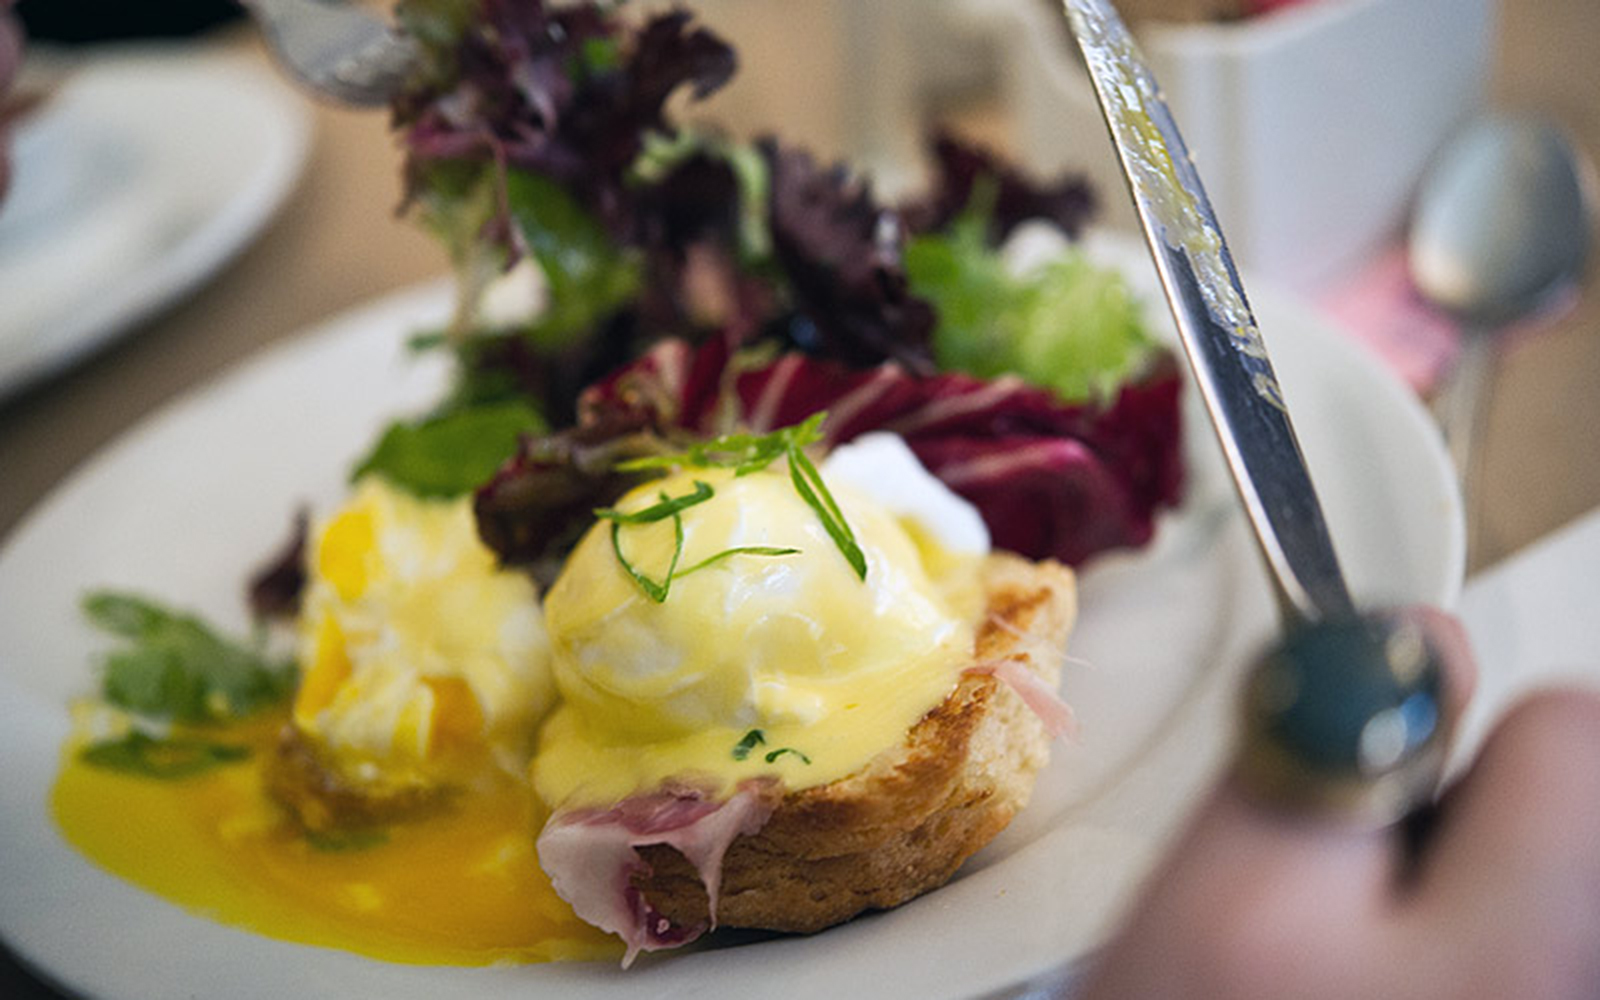 Best Brunch Spots in NYC: Buttermilk Channel